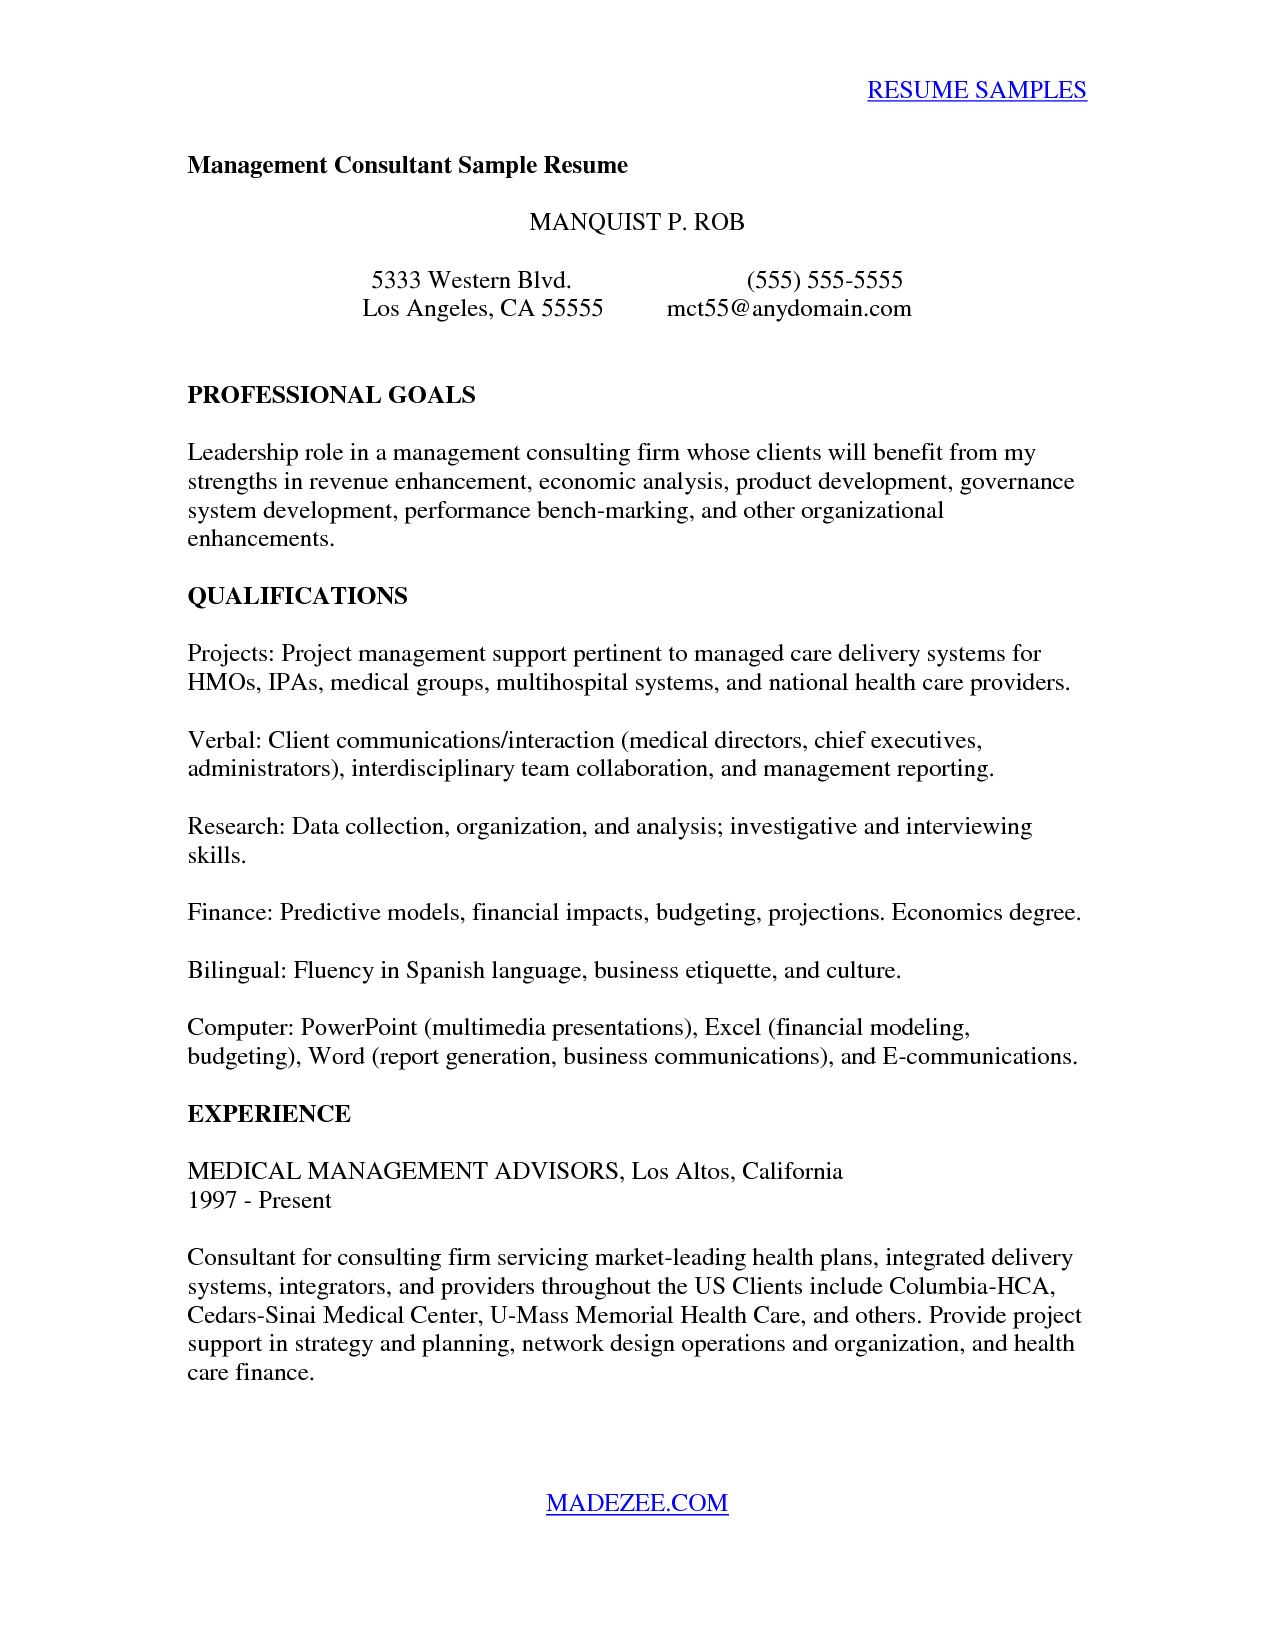 Sample Cover Letter for Internal Position Template - Consultant Sample Management Consulting Cover Letter Management